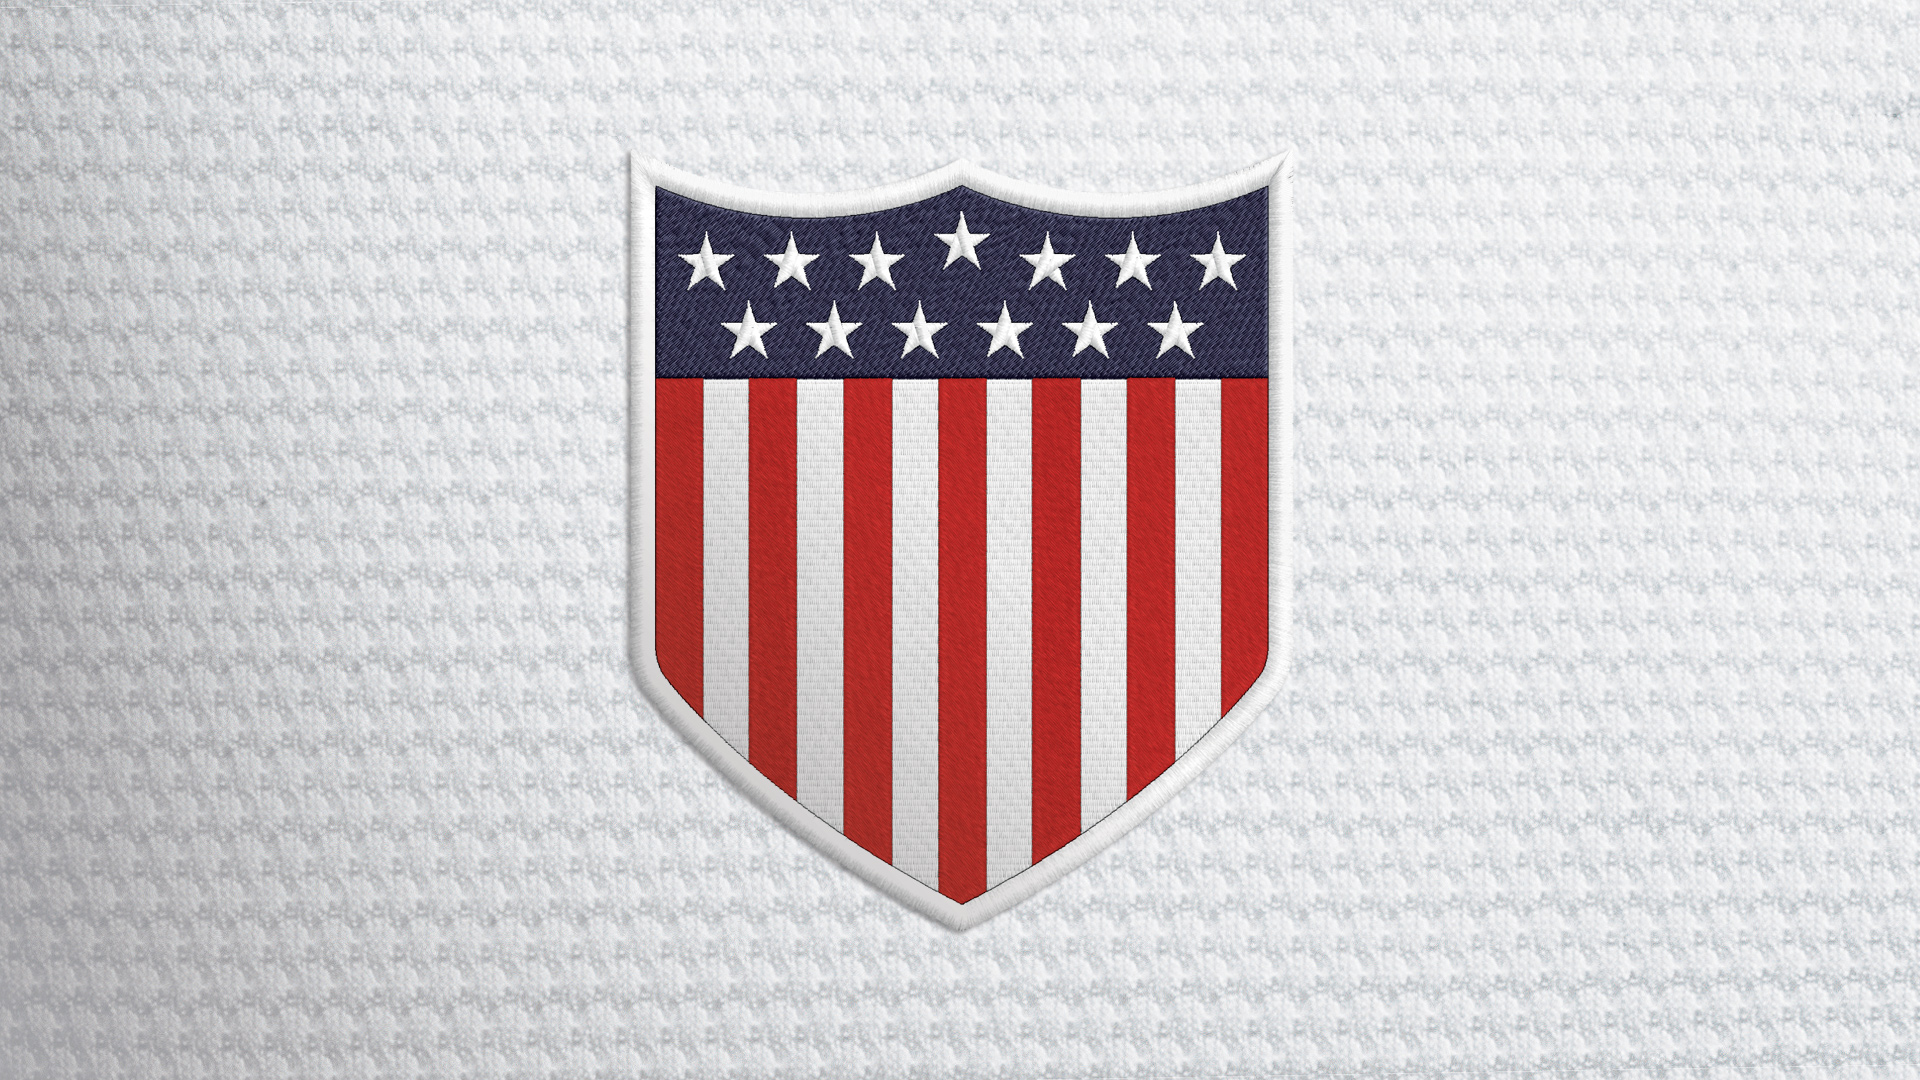 national teams united states wallpapers 560 2 wallpaper id 2242 1920x1080